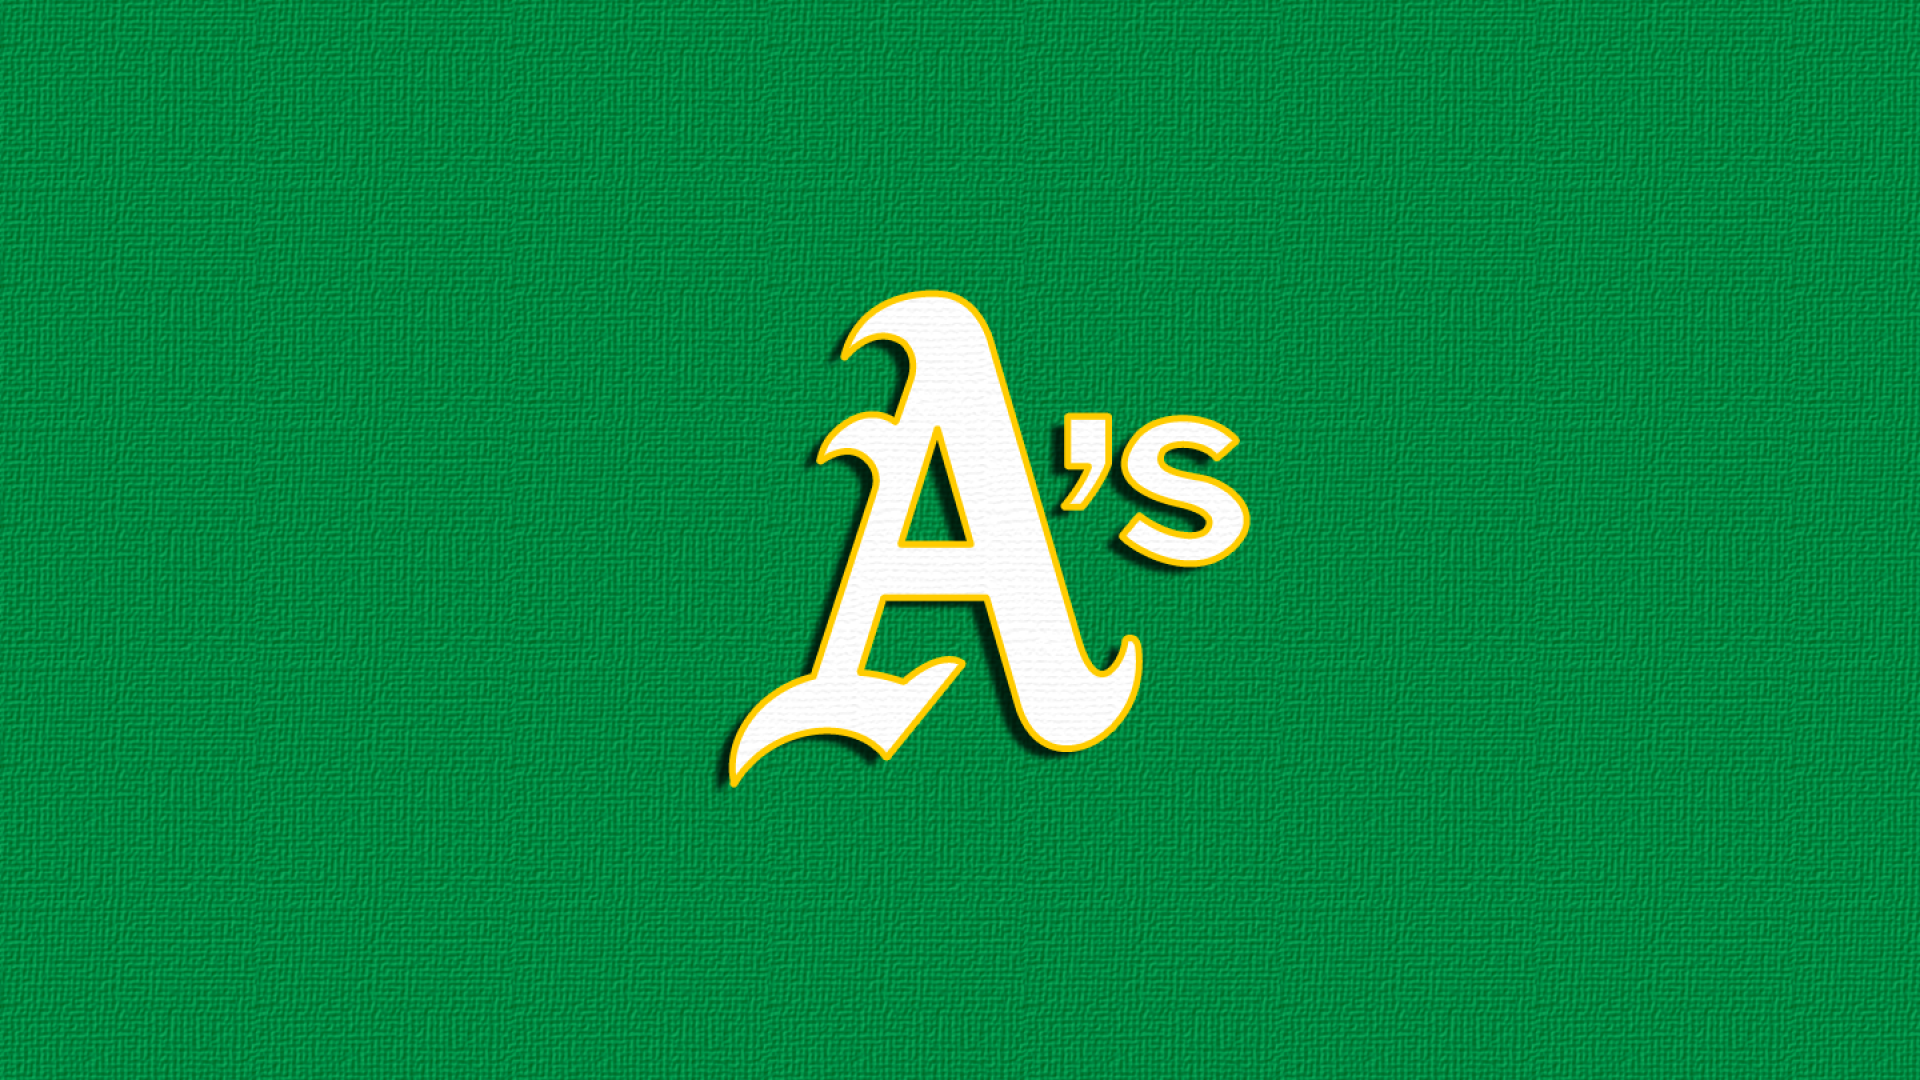 Oakland Athletics Desktop Wallpaper Oakland As Themes Oakland 1920x1080